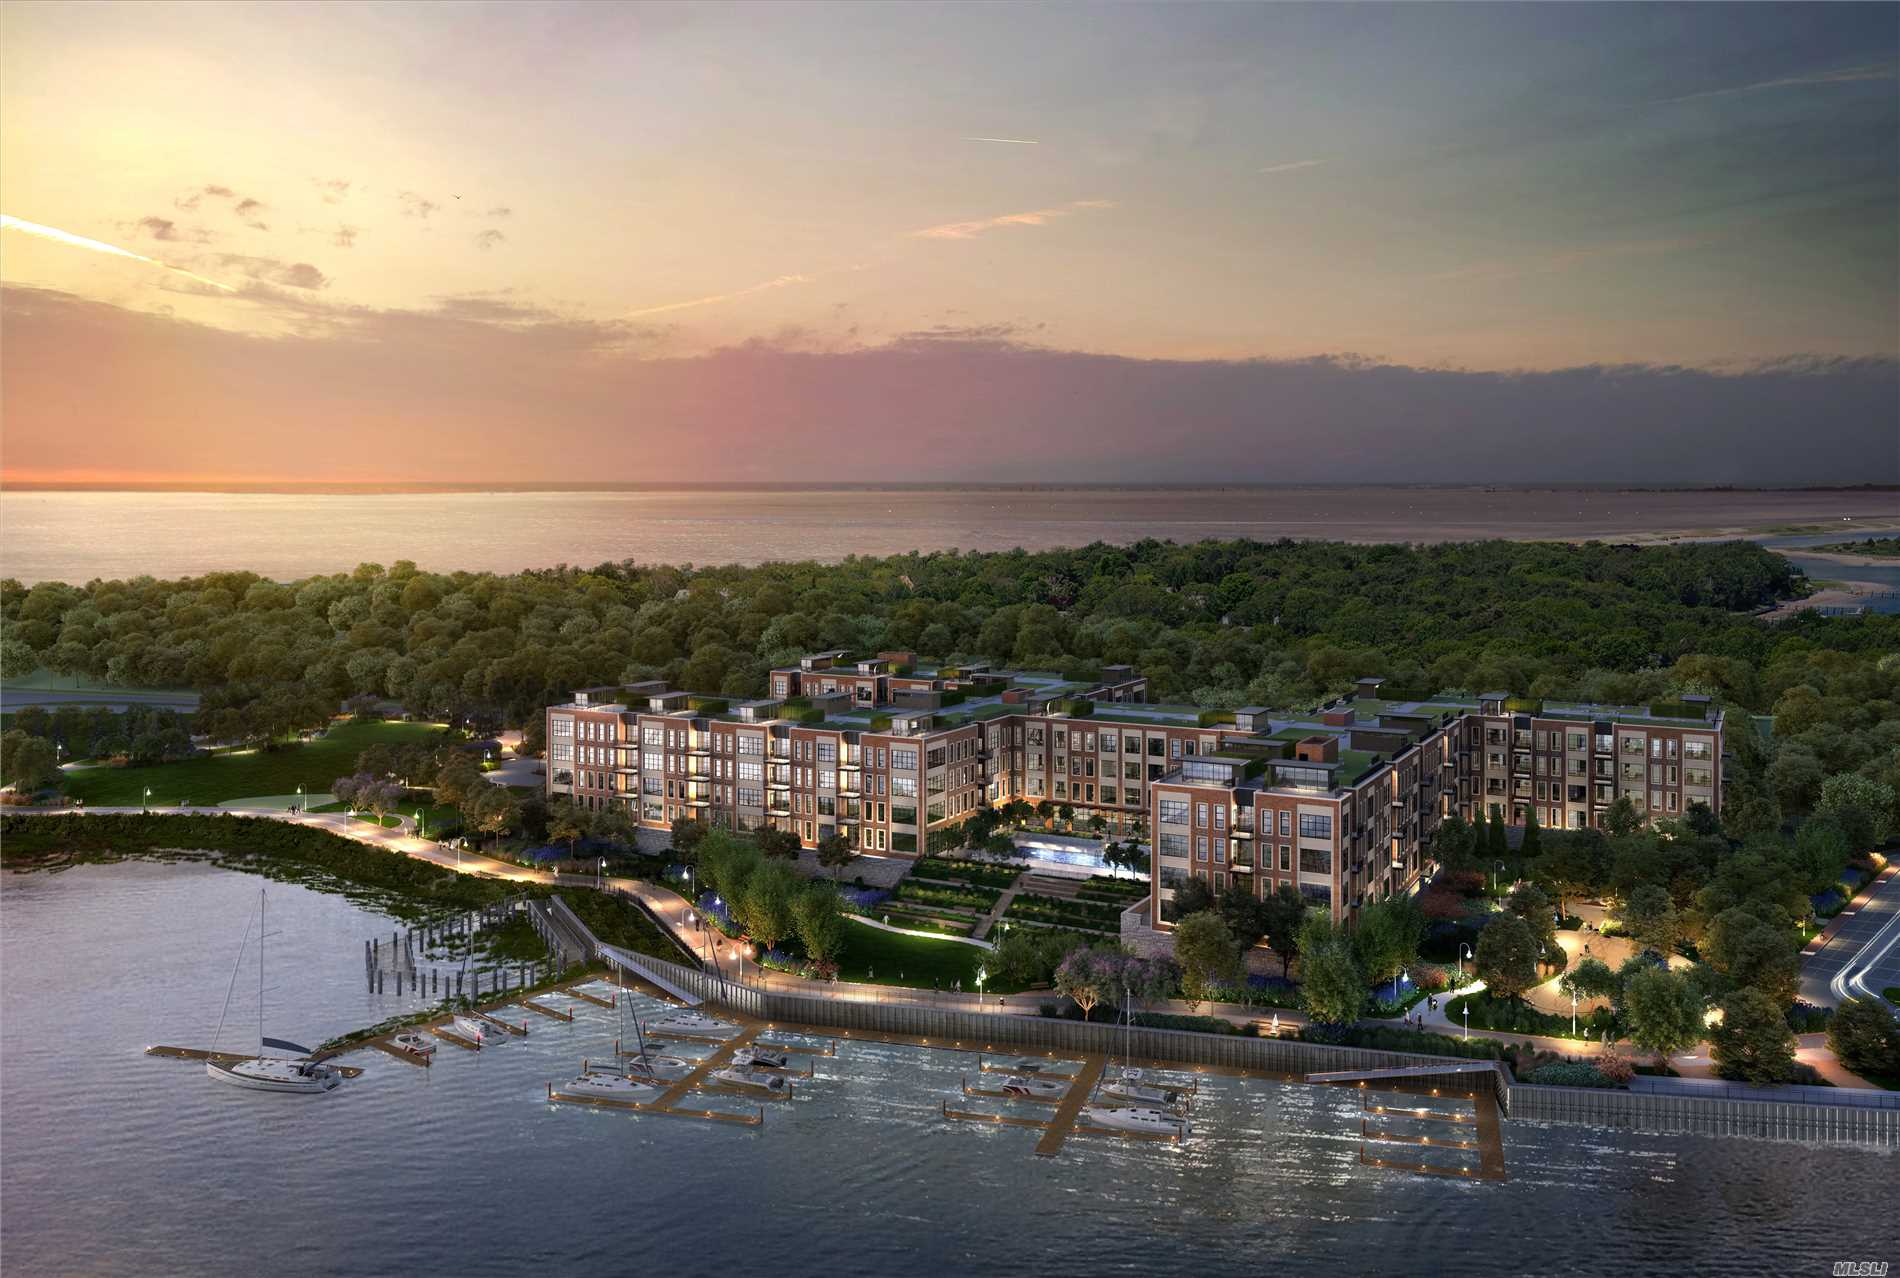 Property for sale at 100 Garvies Point Road # 1328, Glen Cove NY 11542, Glen Cove,  New York 11542